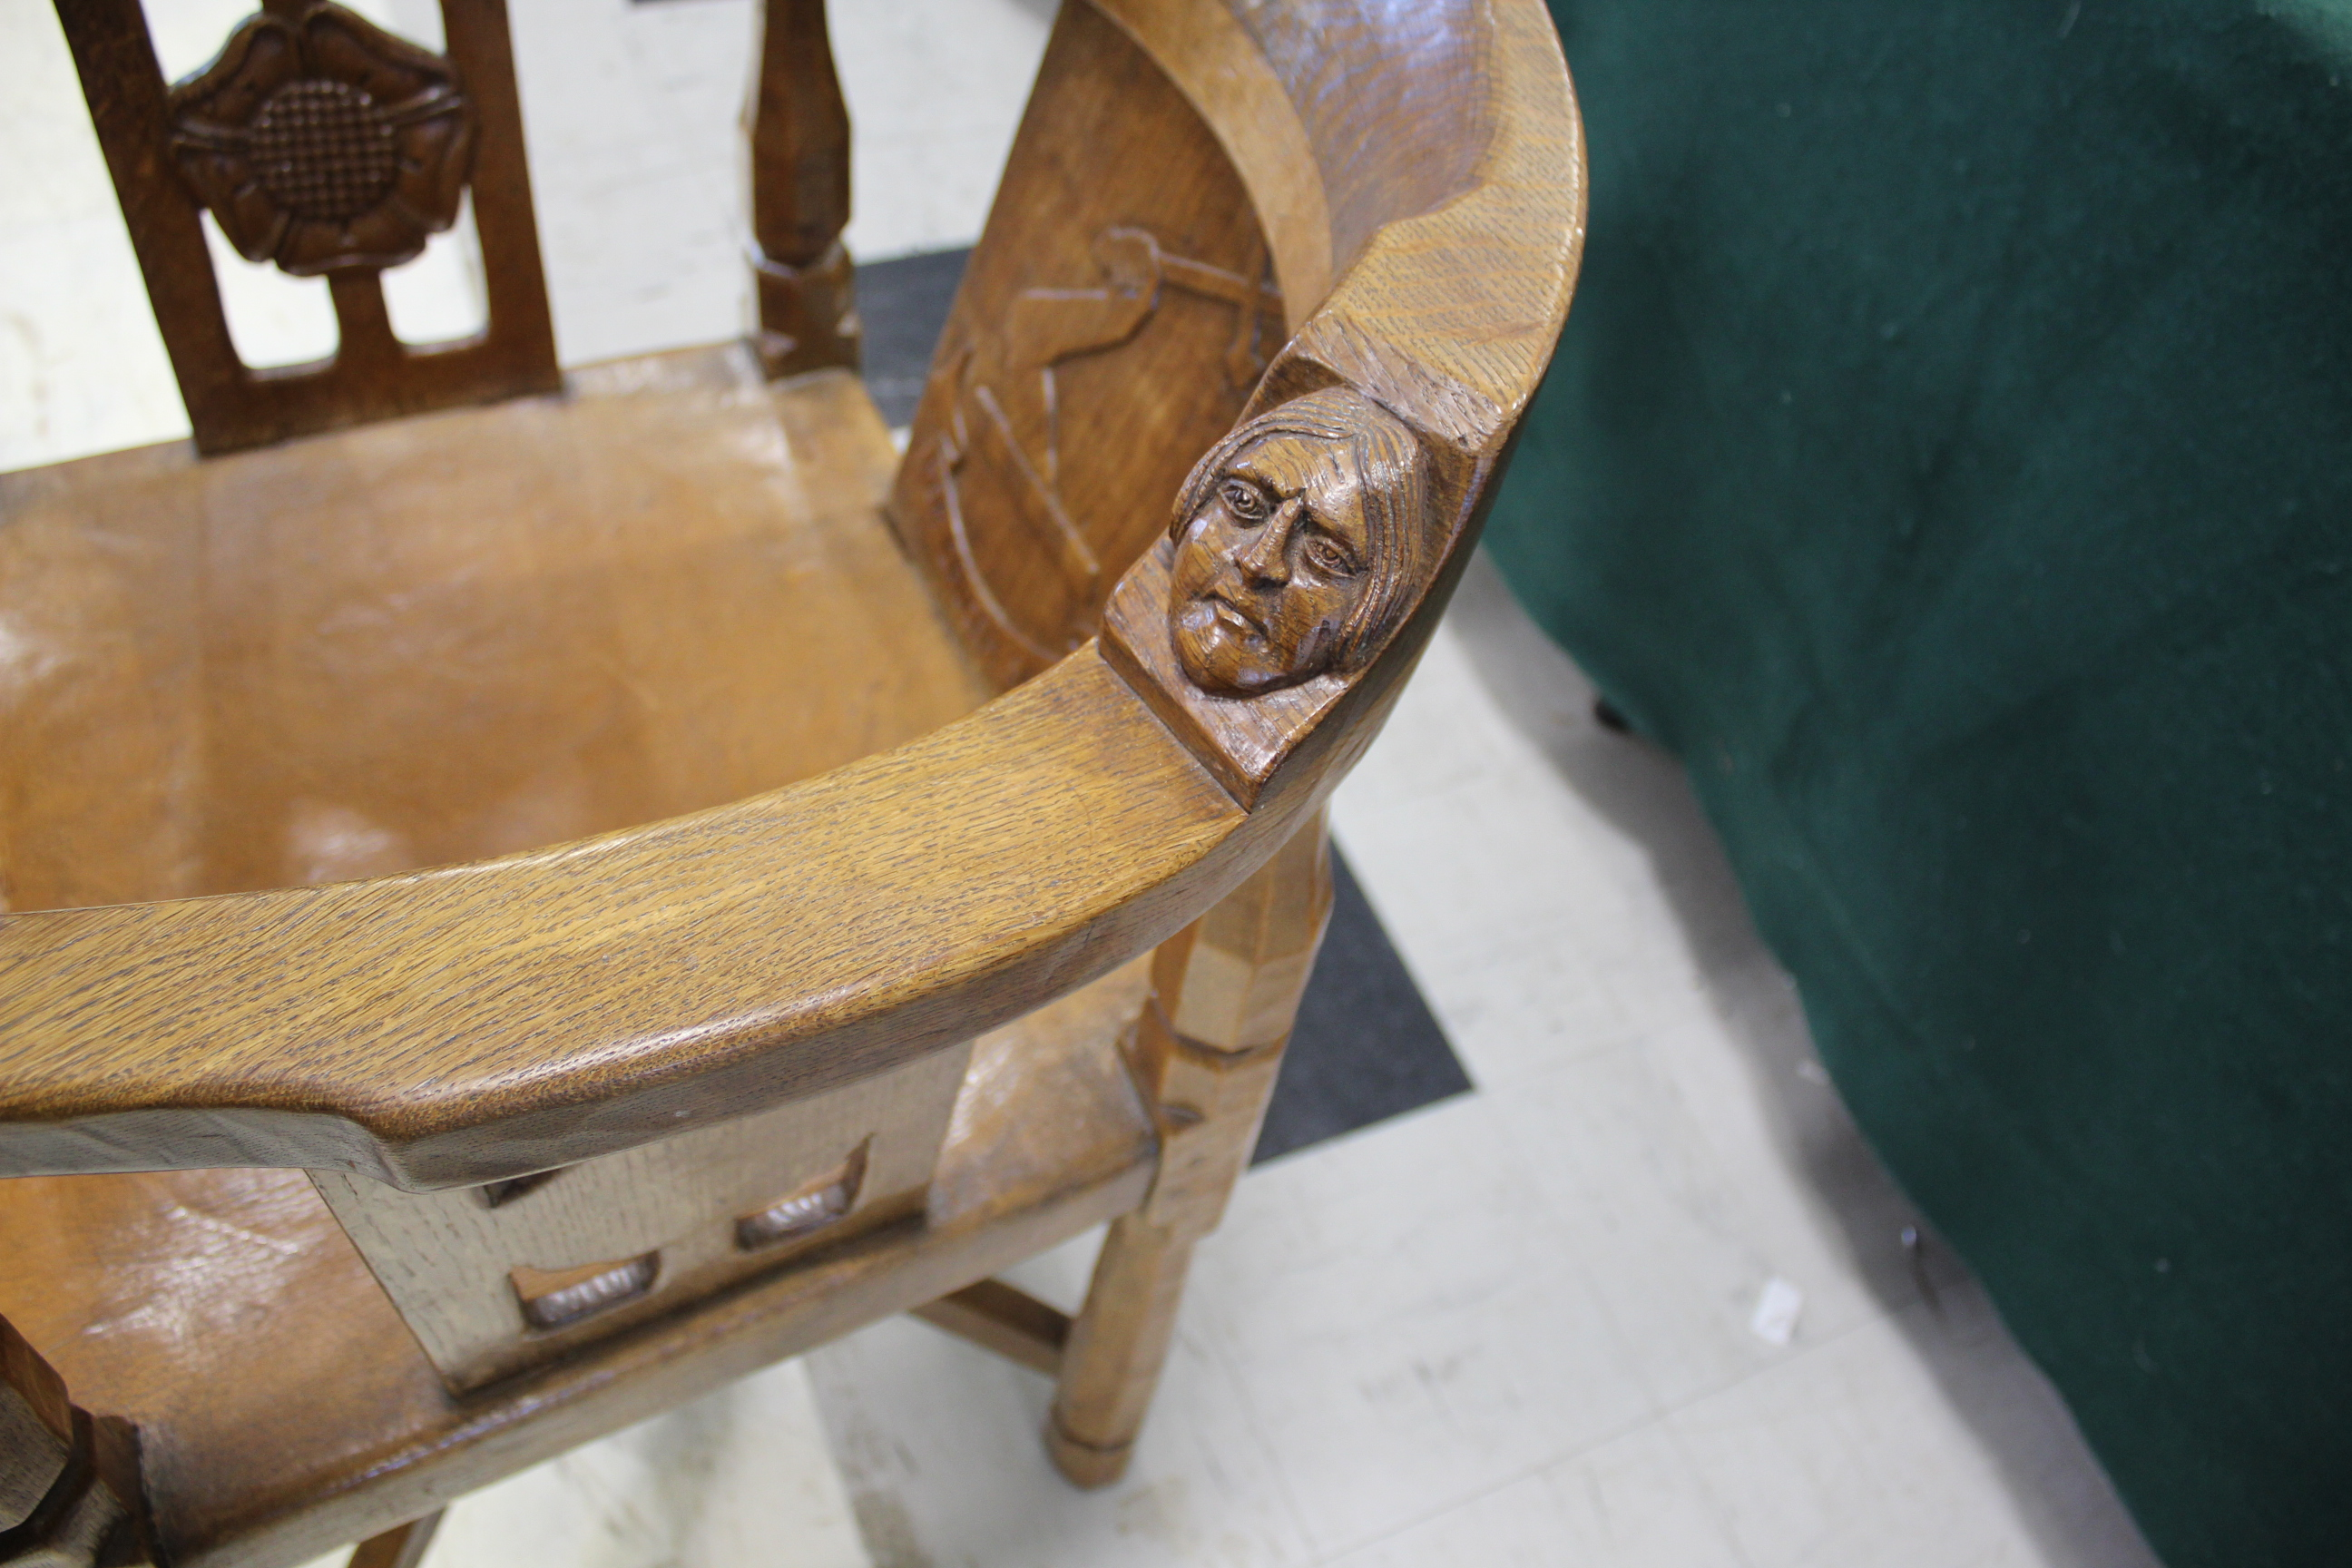 ROBERT THOMPSON OF KILBURN - MOUSEMAN MONKS CHAIR a circa 1920s/1930s oak Monk's armchair with a - Image 11 of 27